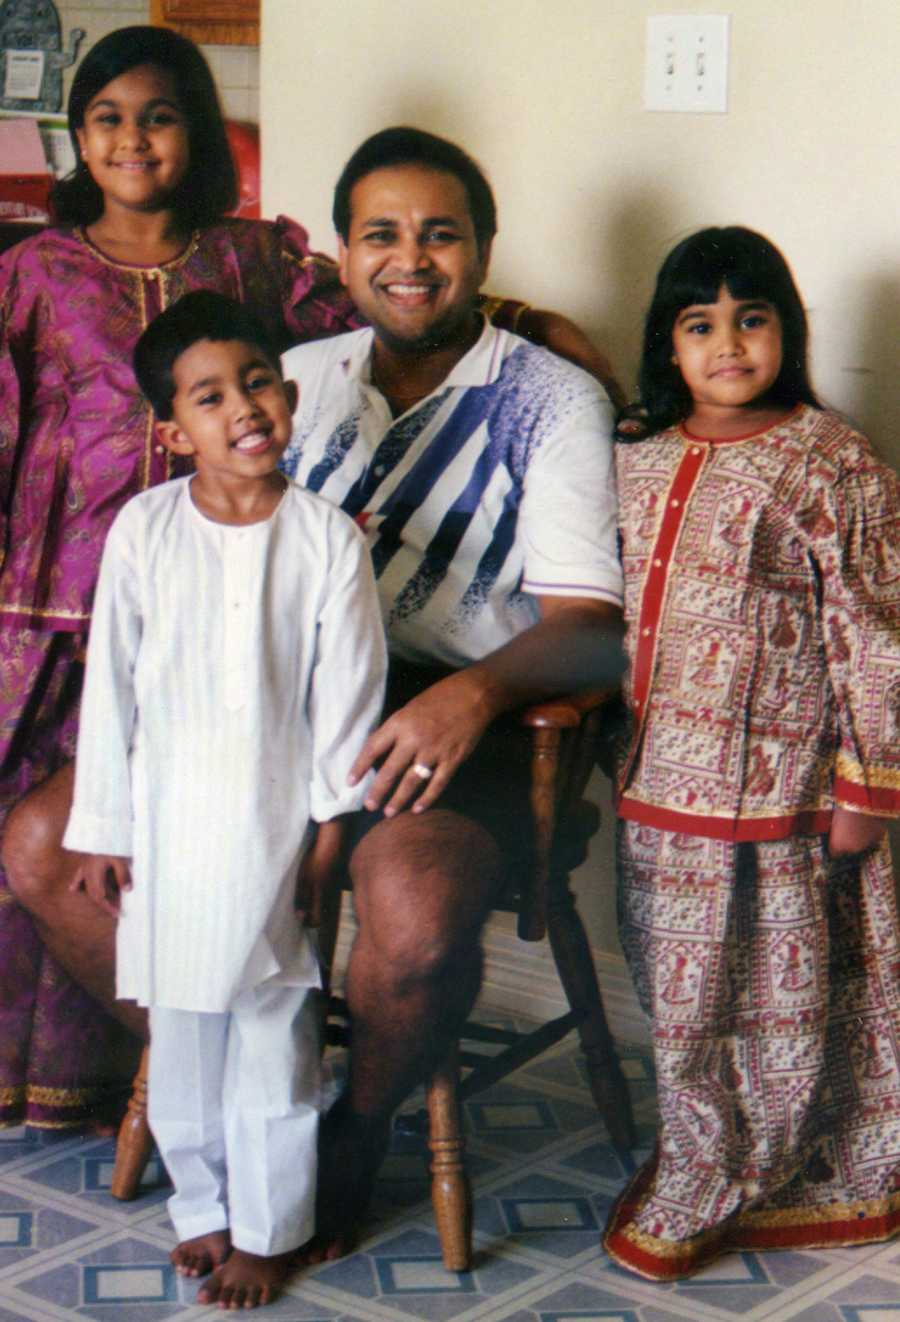 """Sonia Shah's fatherJayesh """"Jay"""" Shah was killed. Sonia is a Baylor University social work student, who spent the summer volunteering with refugee aid organizations in Greece. She said her father's death fueled her impulse to try to help where others turn away"""